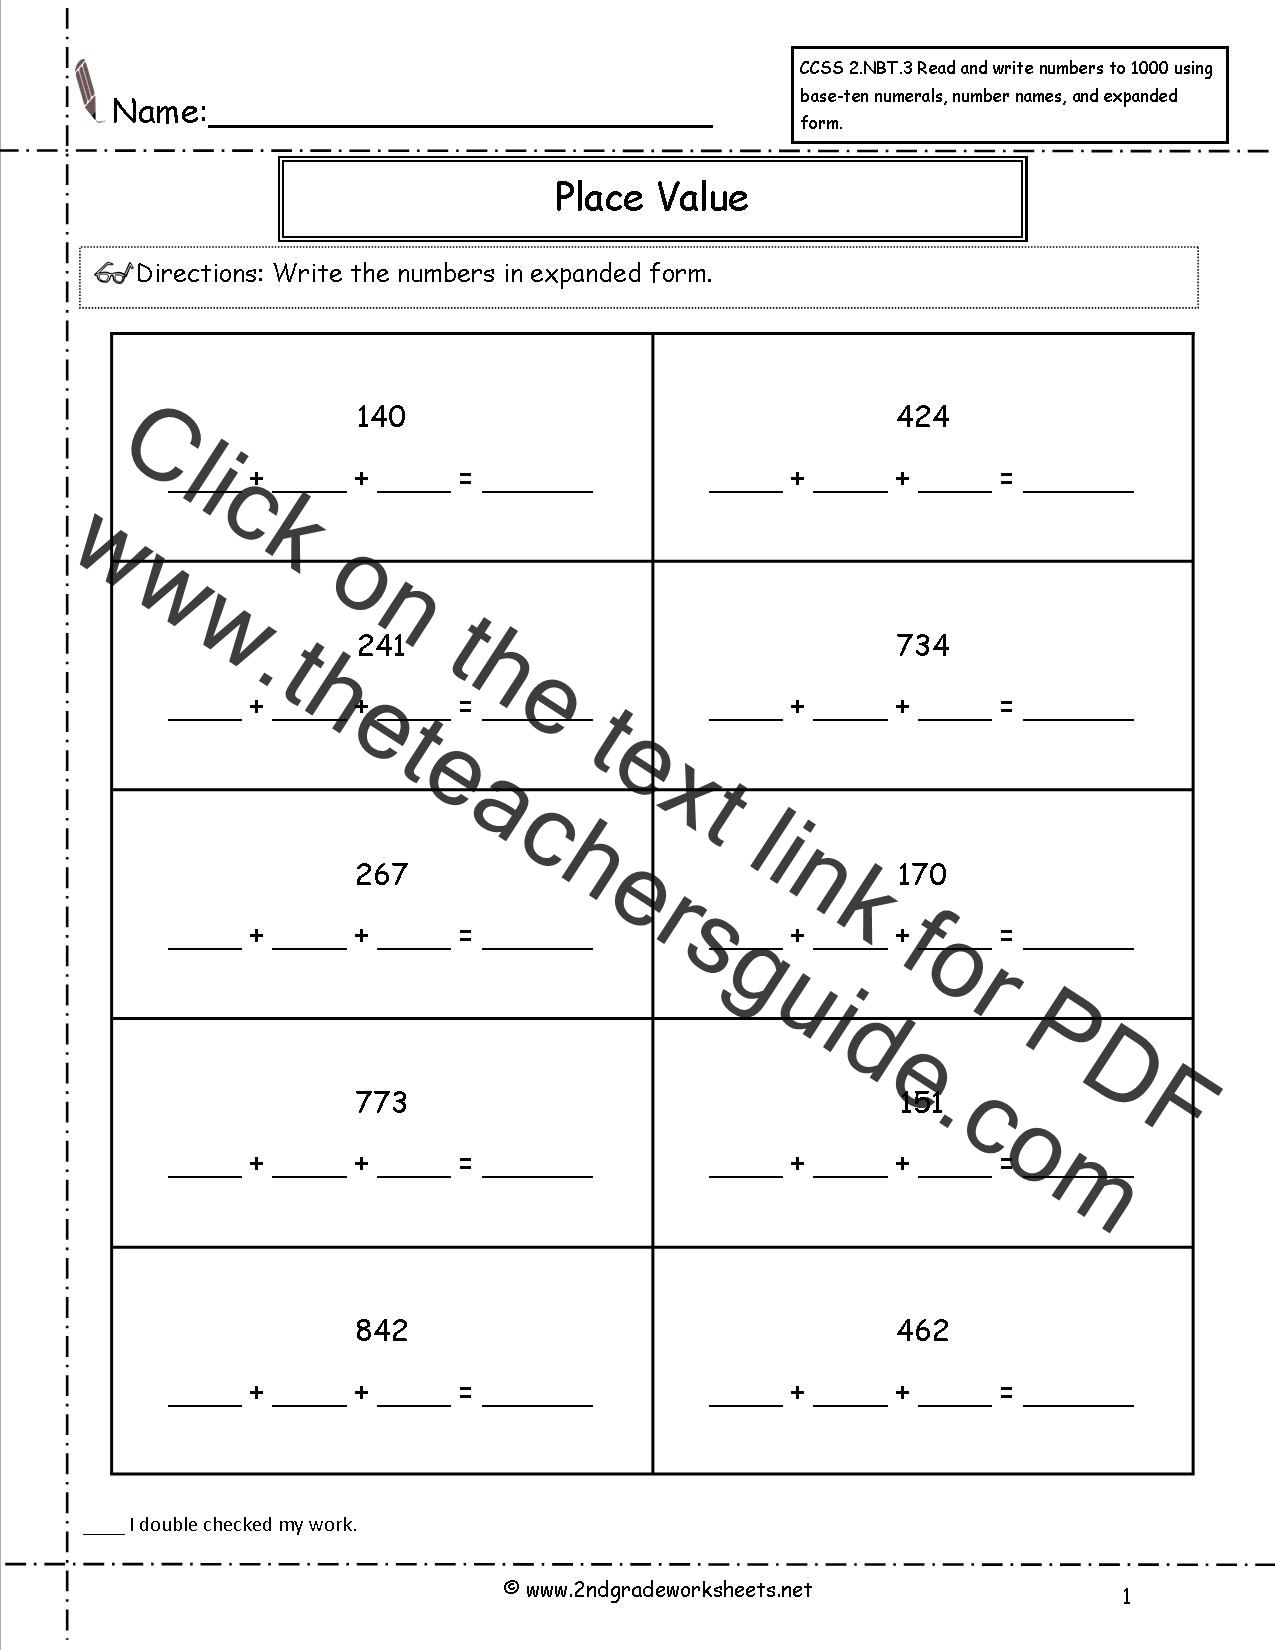 Write In Expanded Form Worksheet